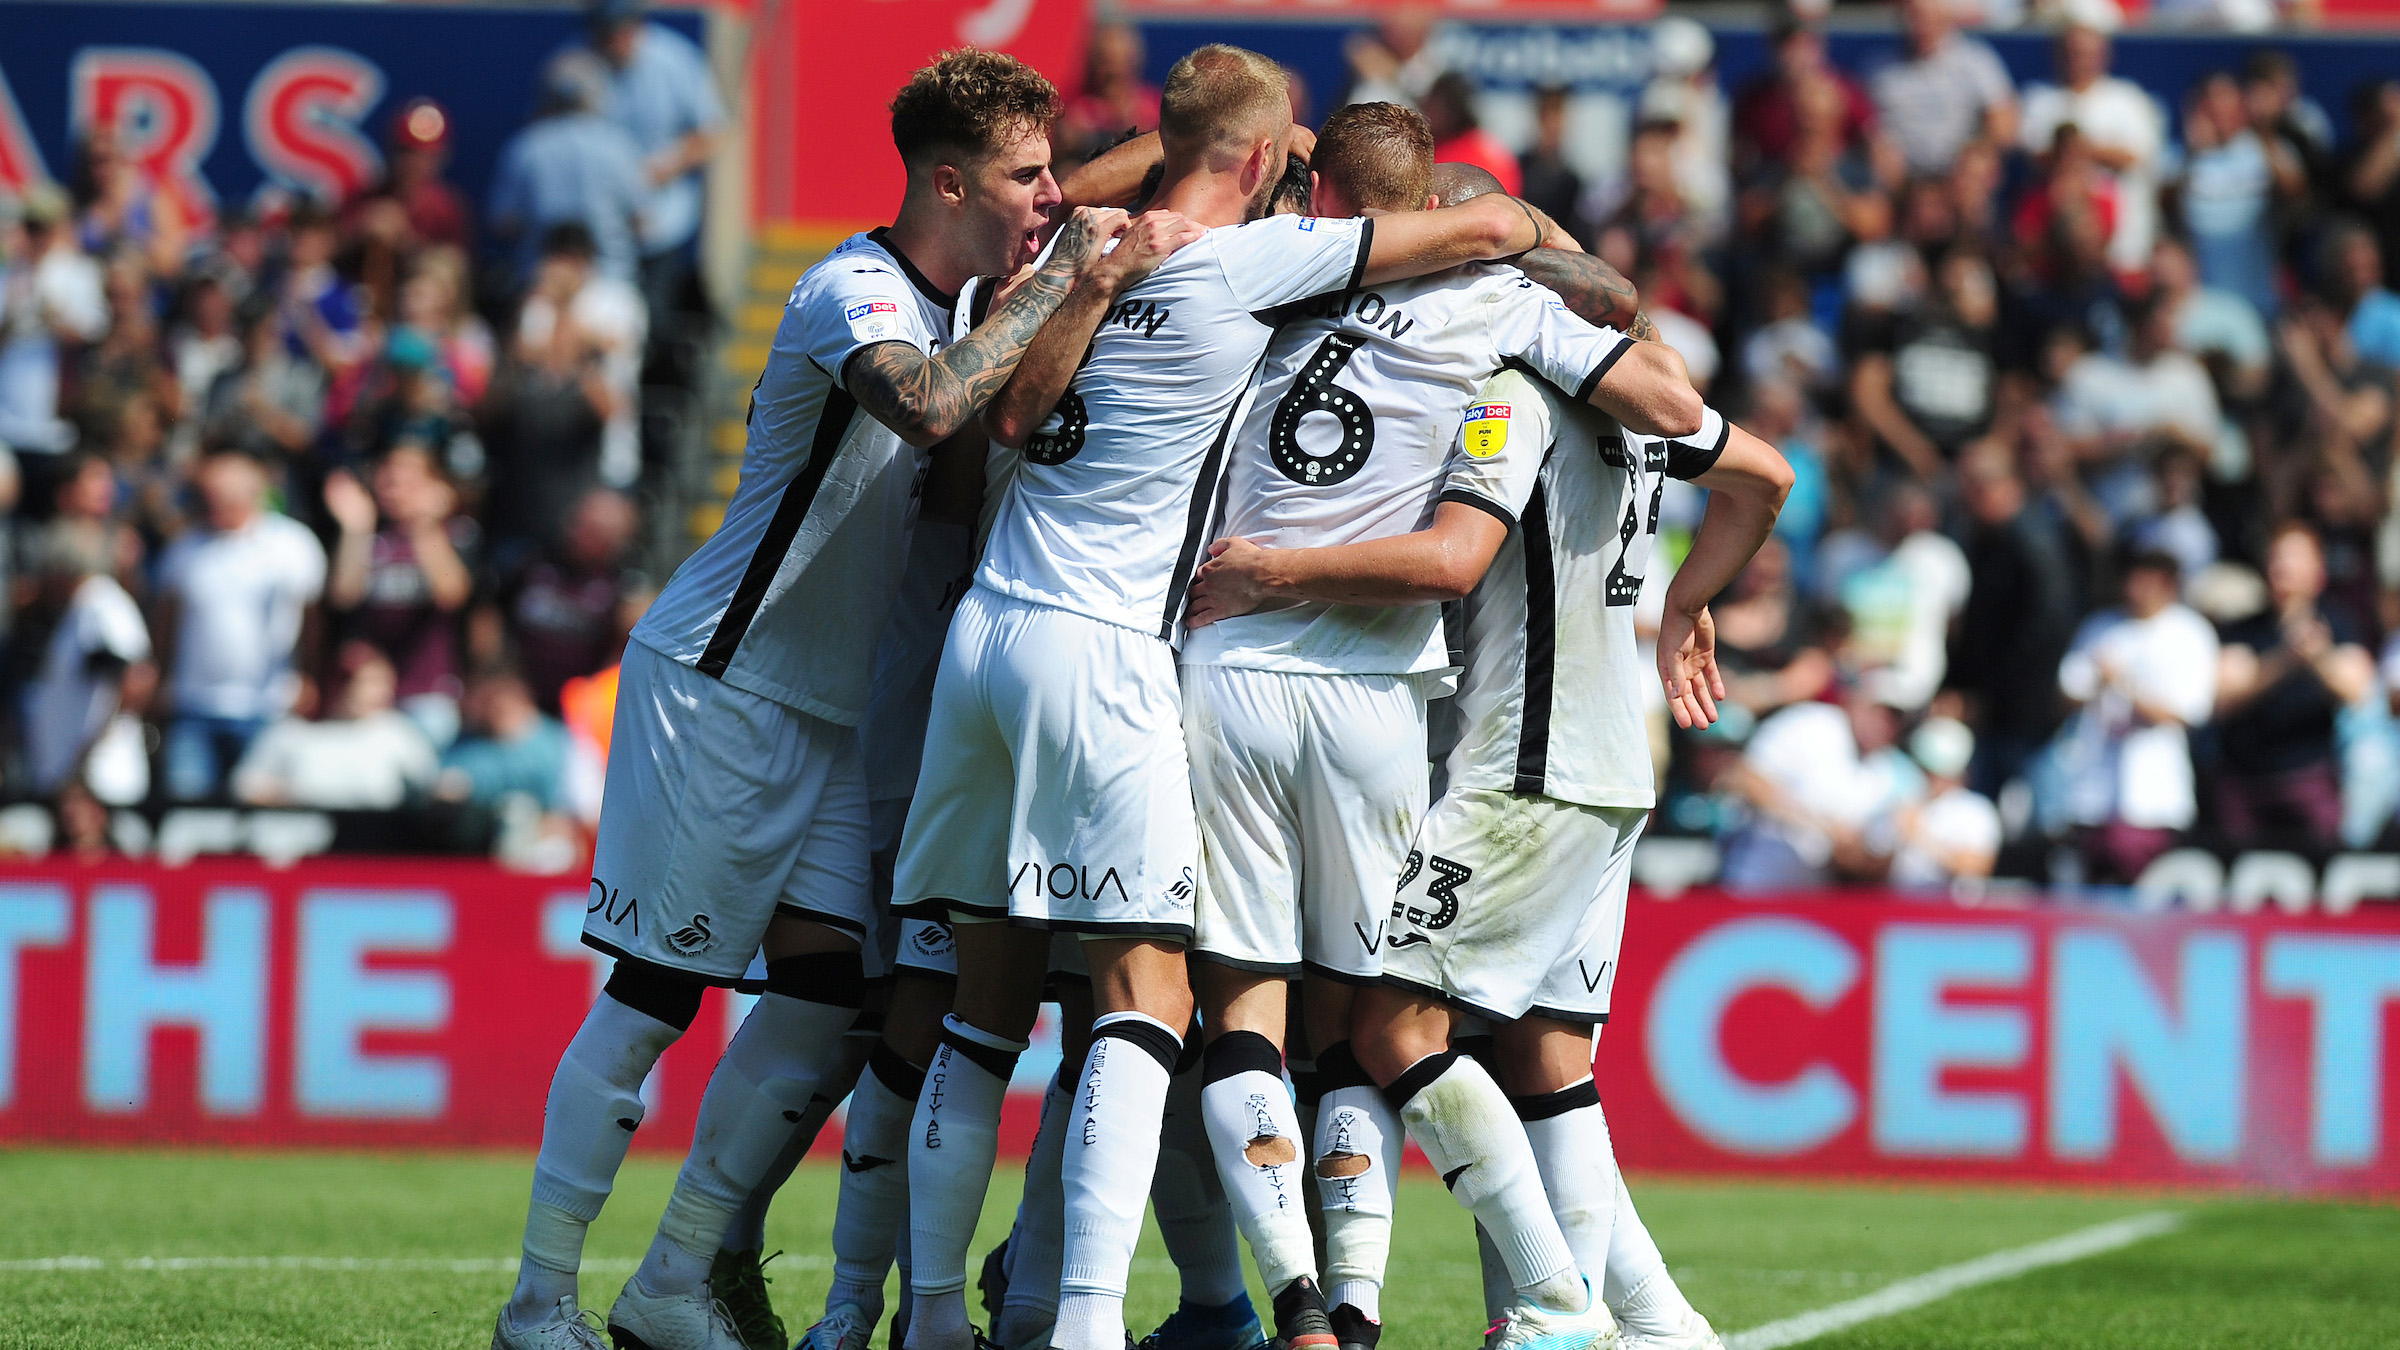 The Swans squad celebrate a goal